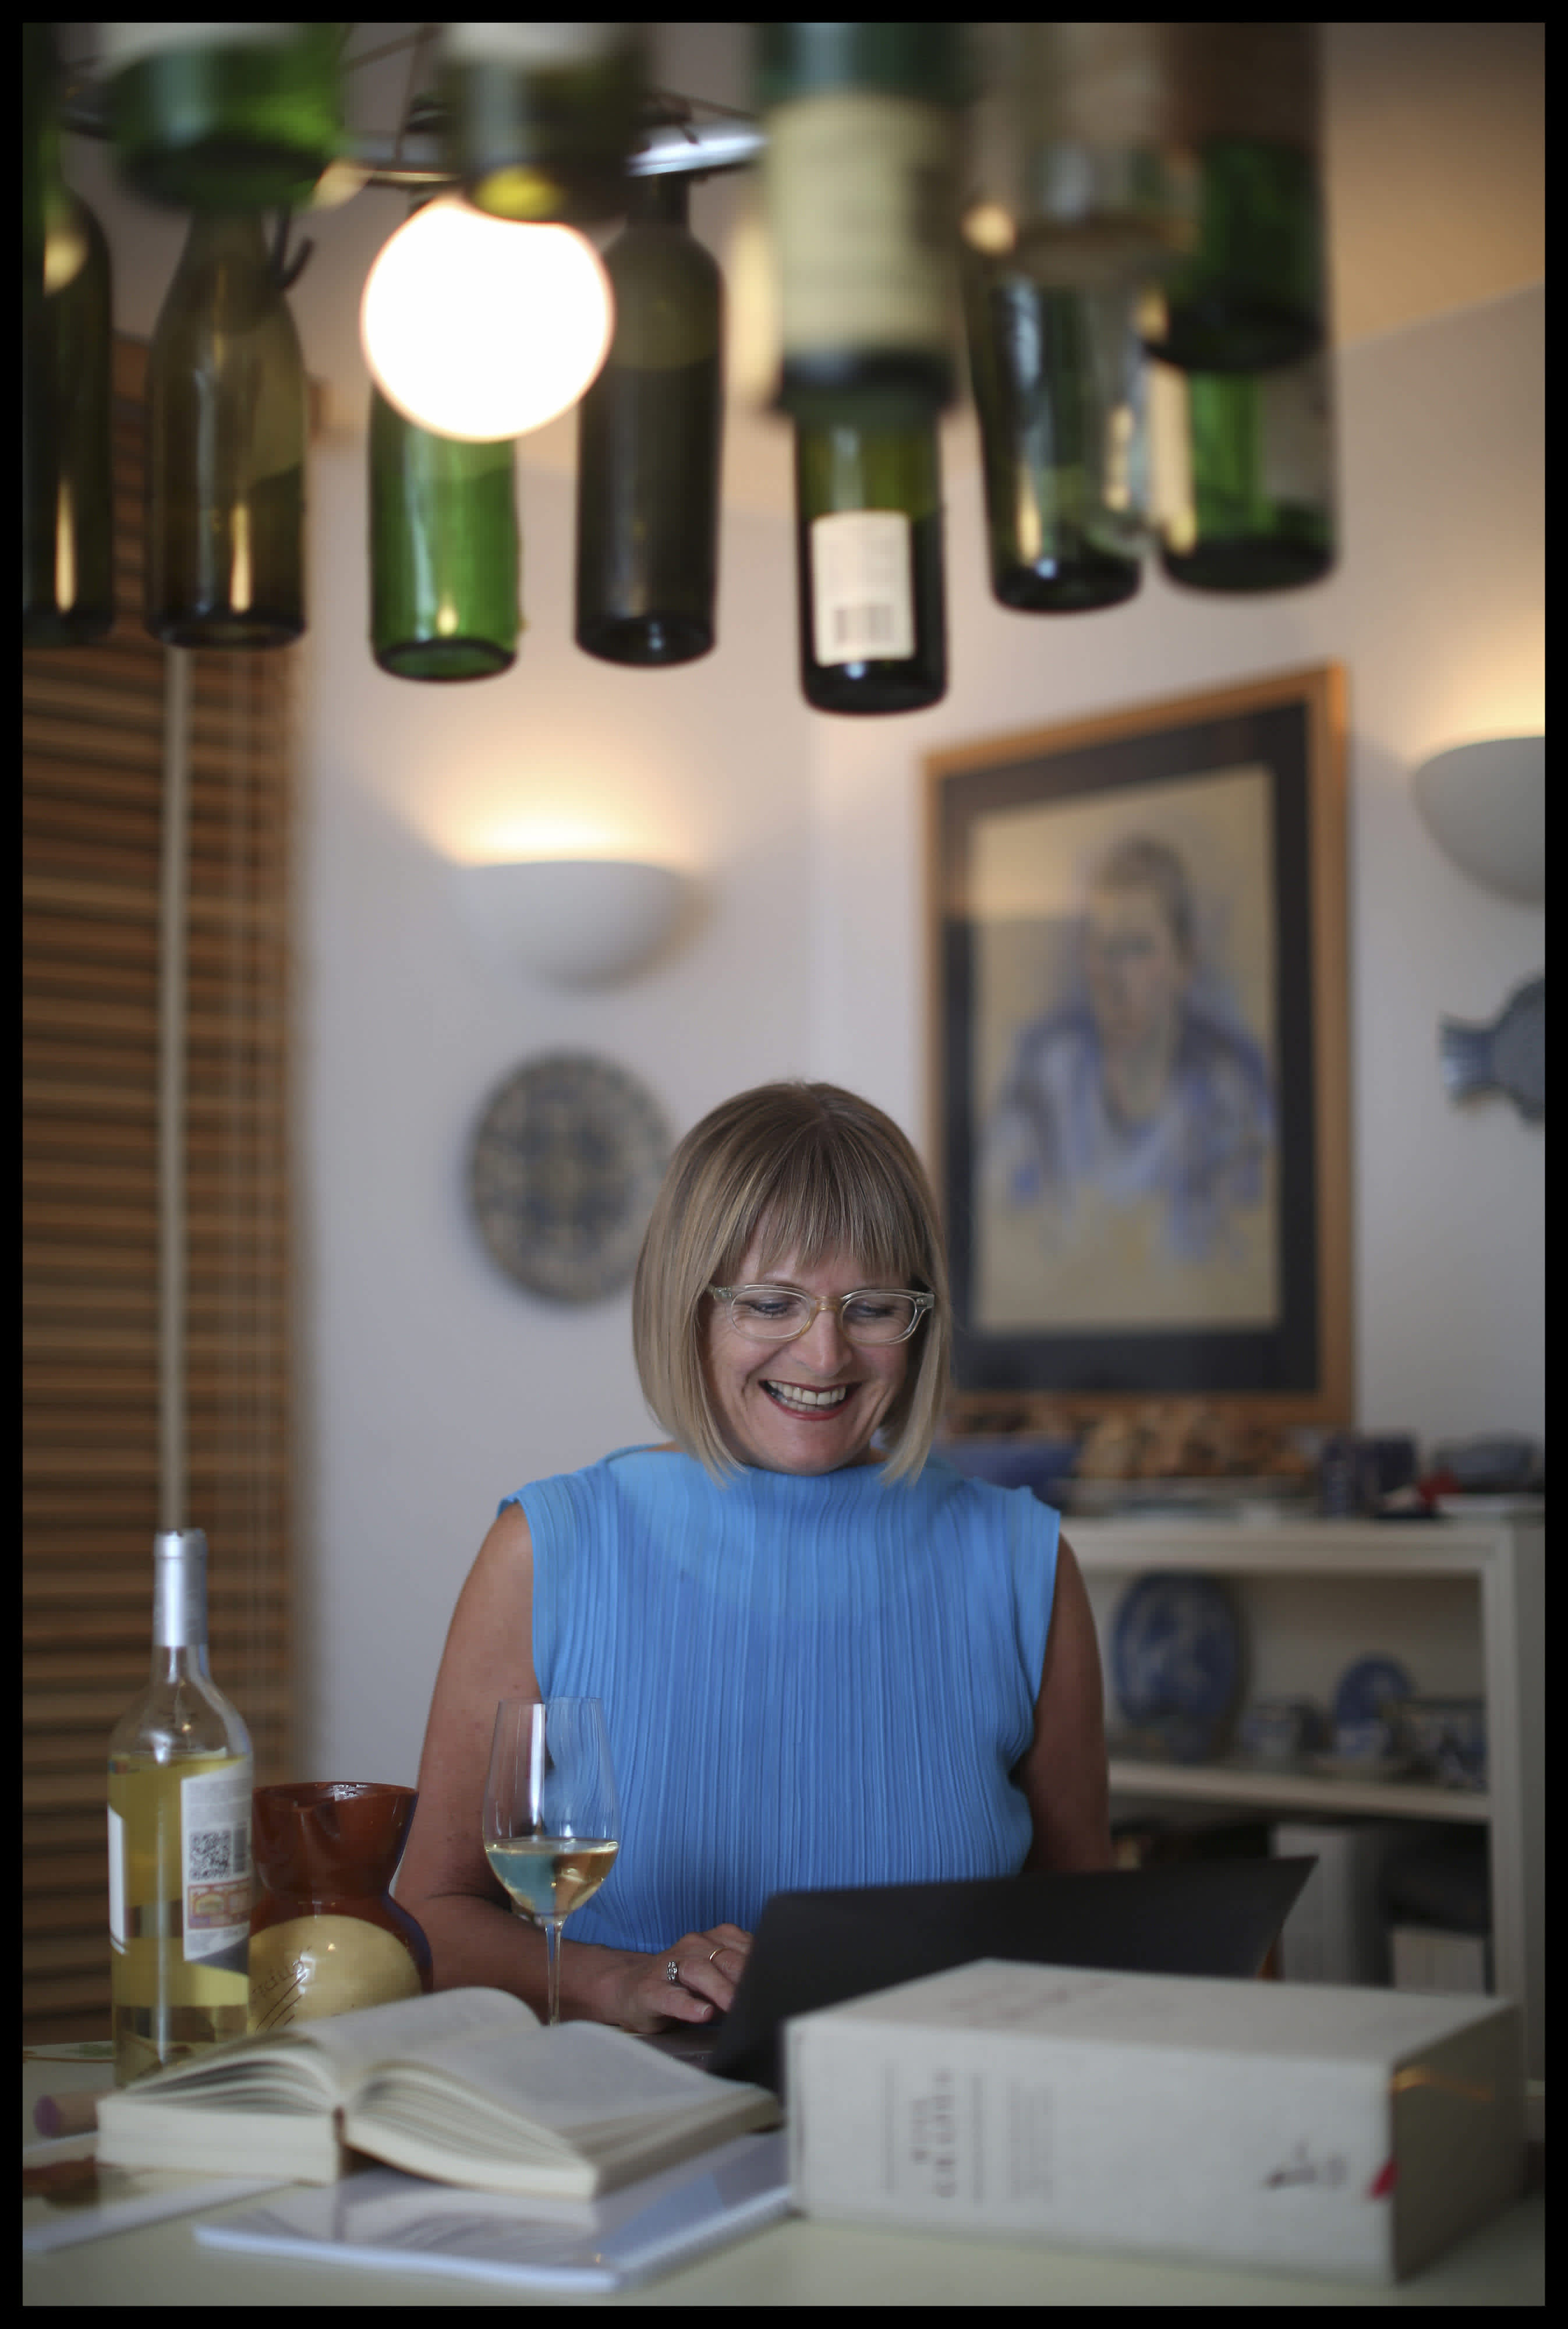 ancis Robinson at her laptop surrounding by wine bottles (courtesy)